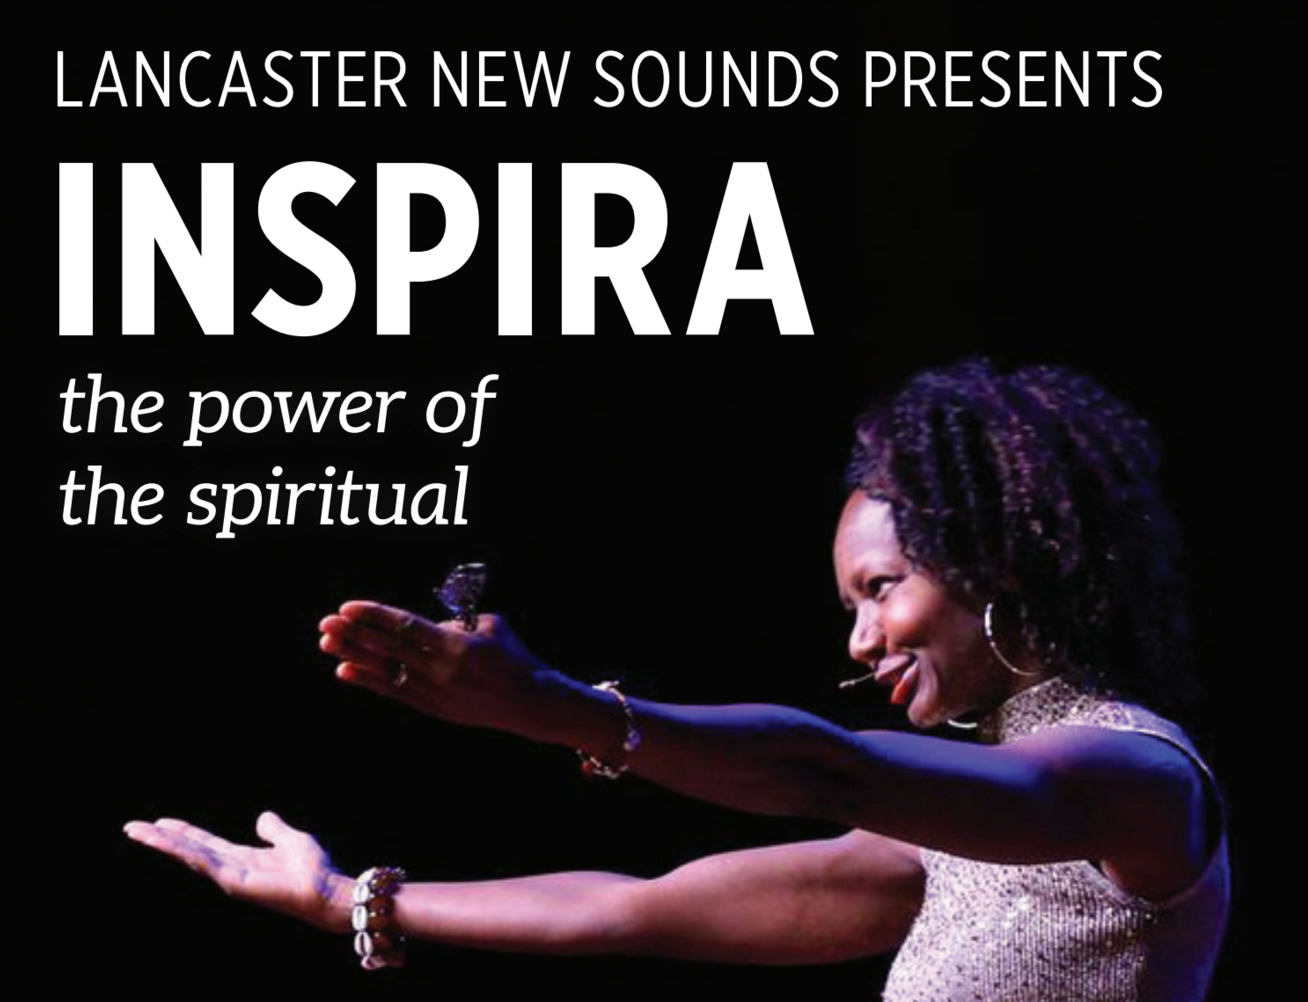 Lancaster New Sounds Presents Inspira: Power of the Spiritual